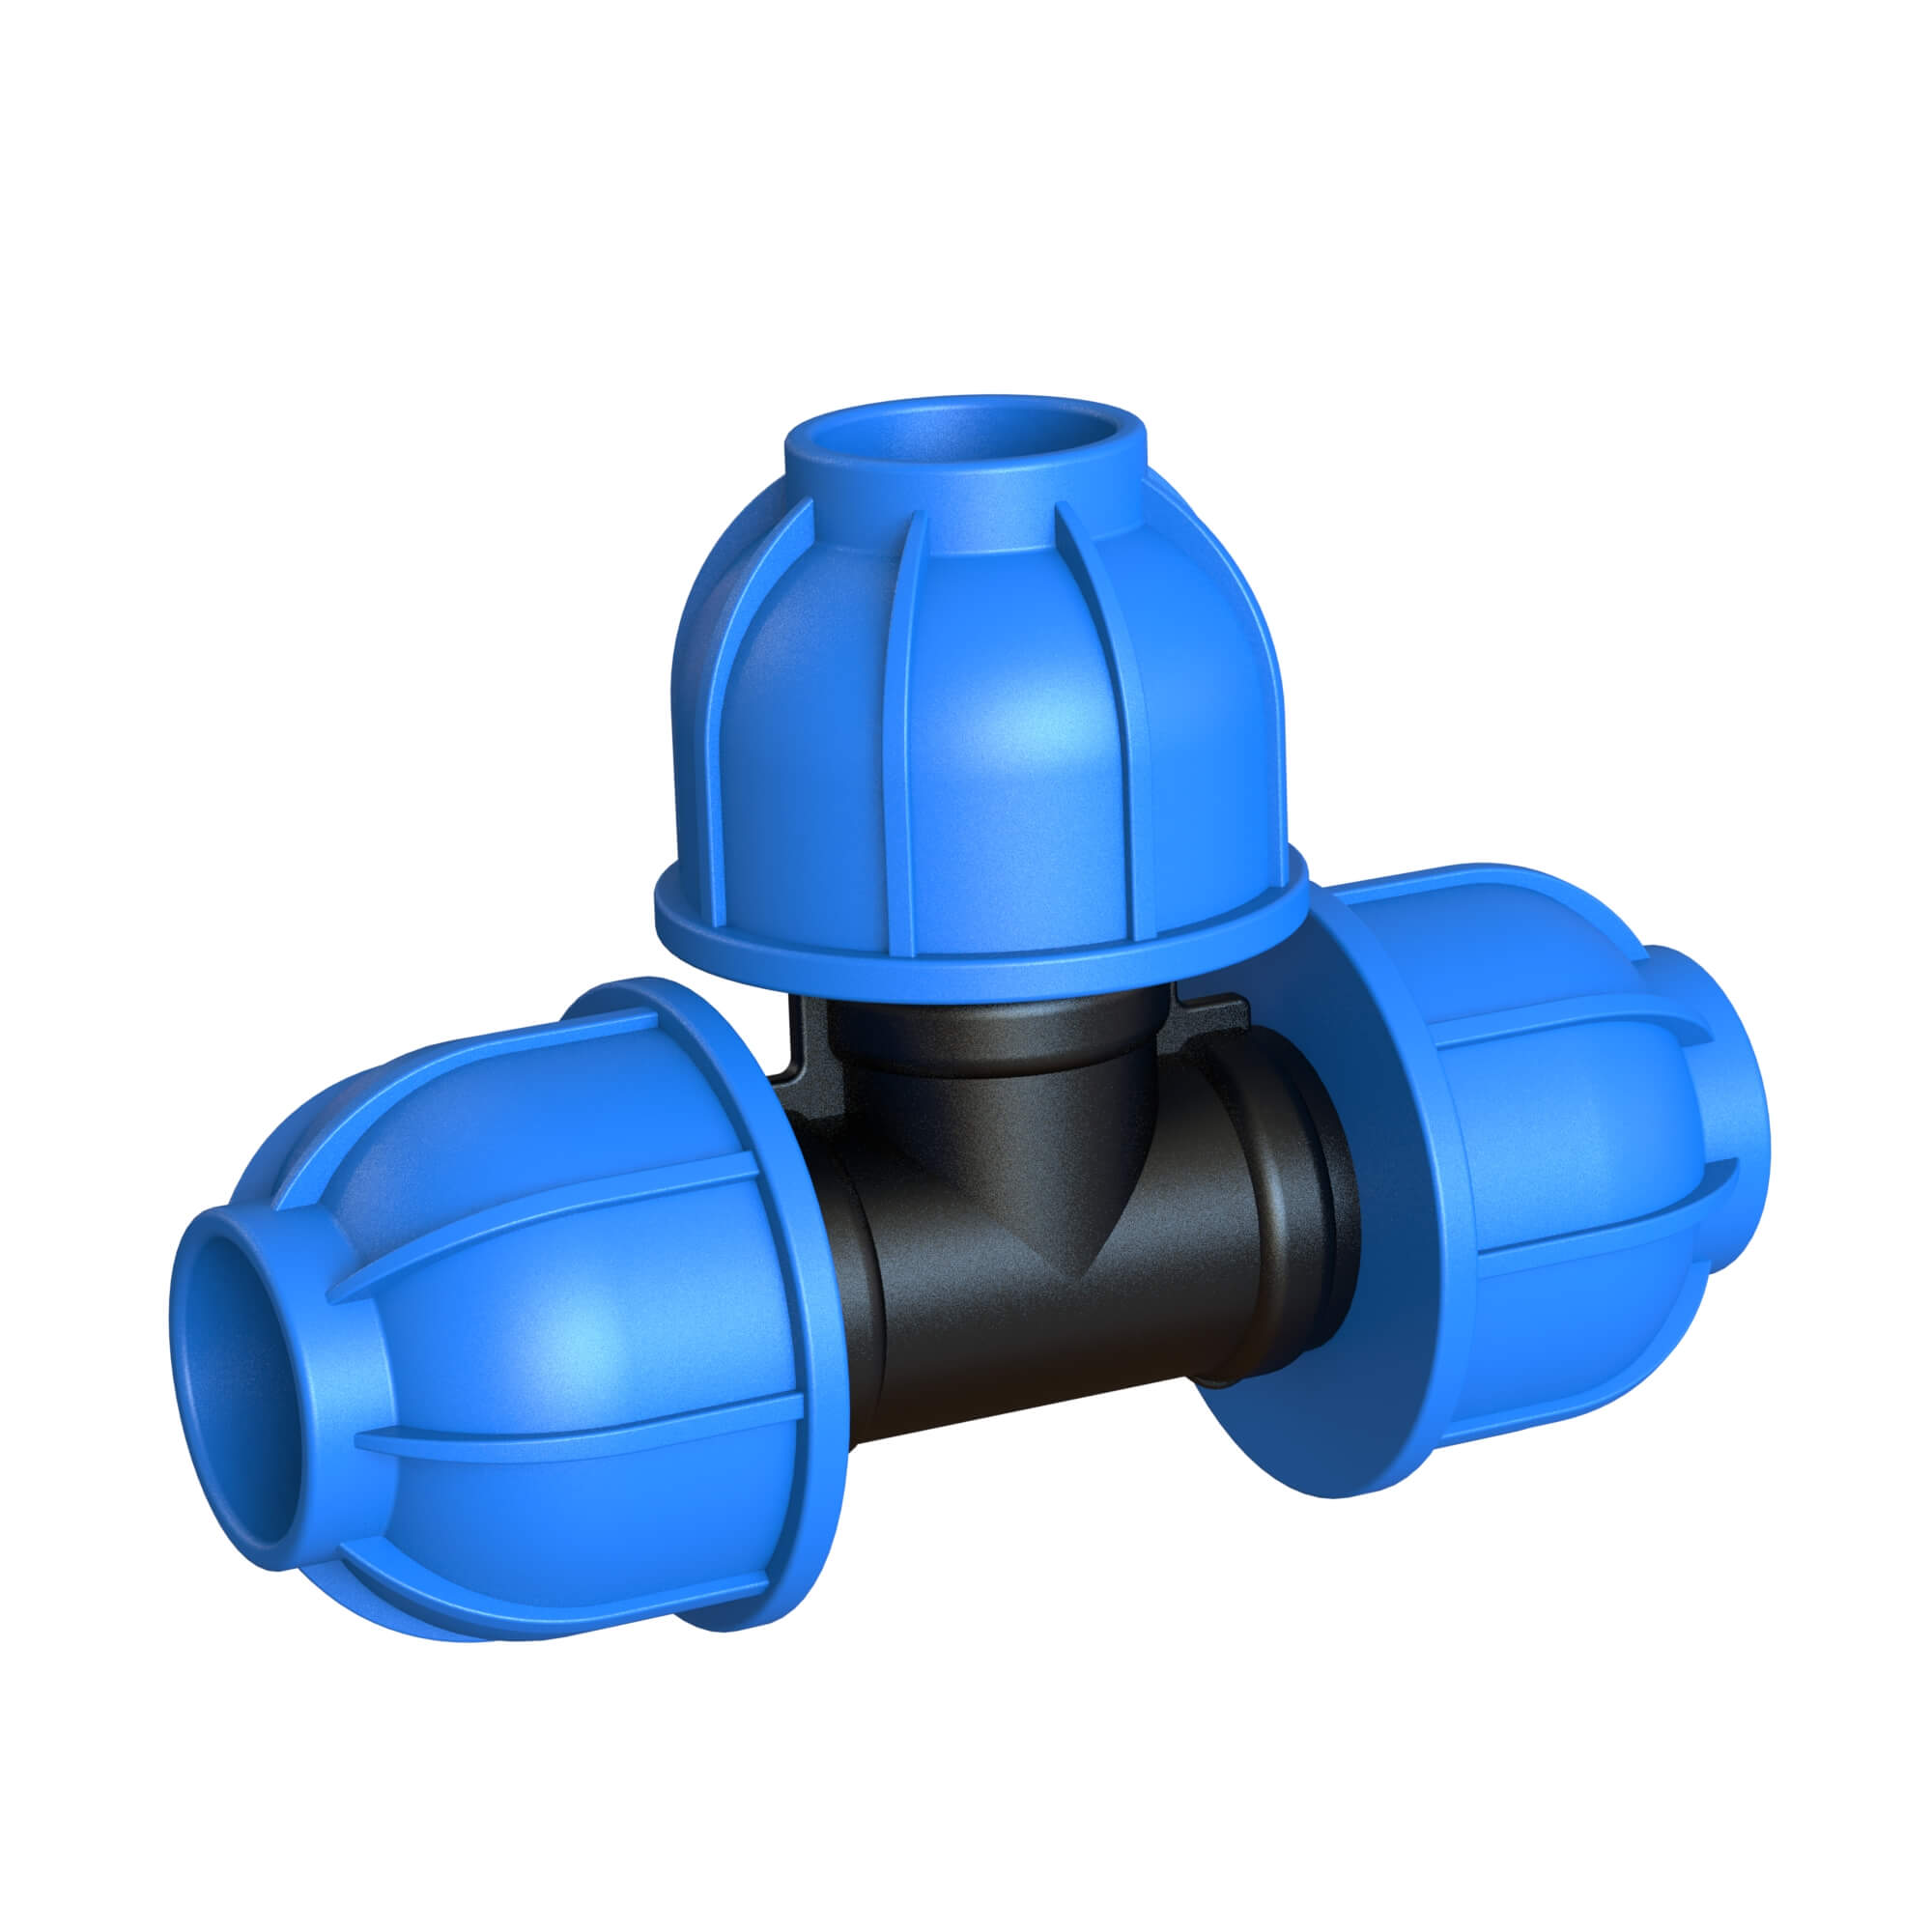 Reticulation piping system